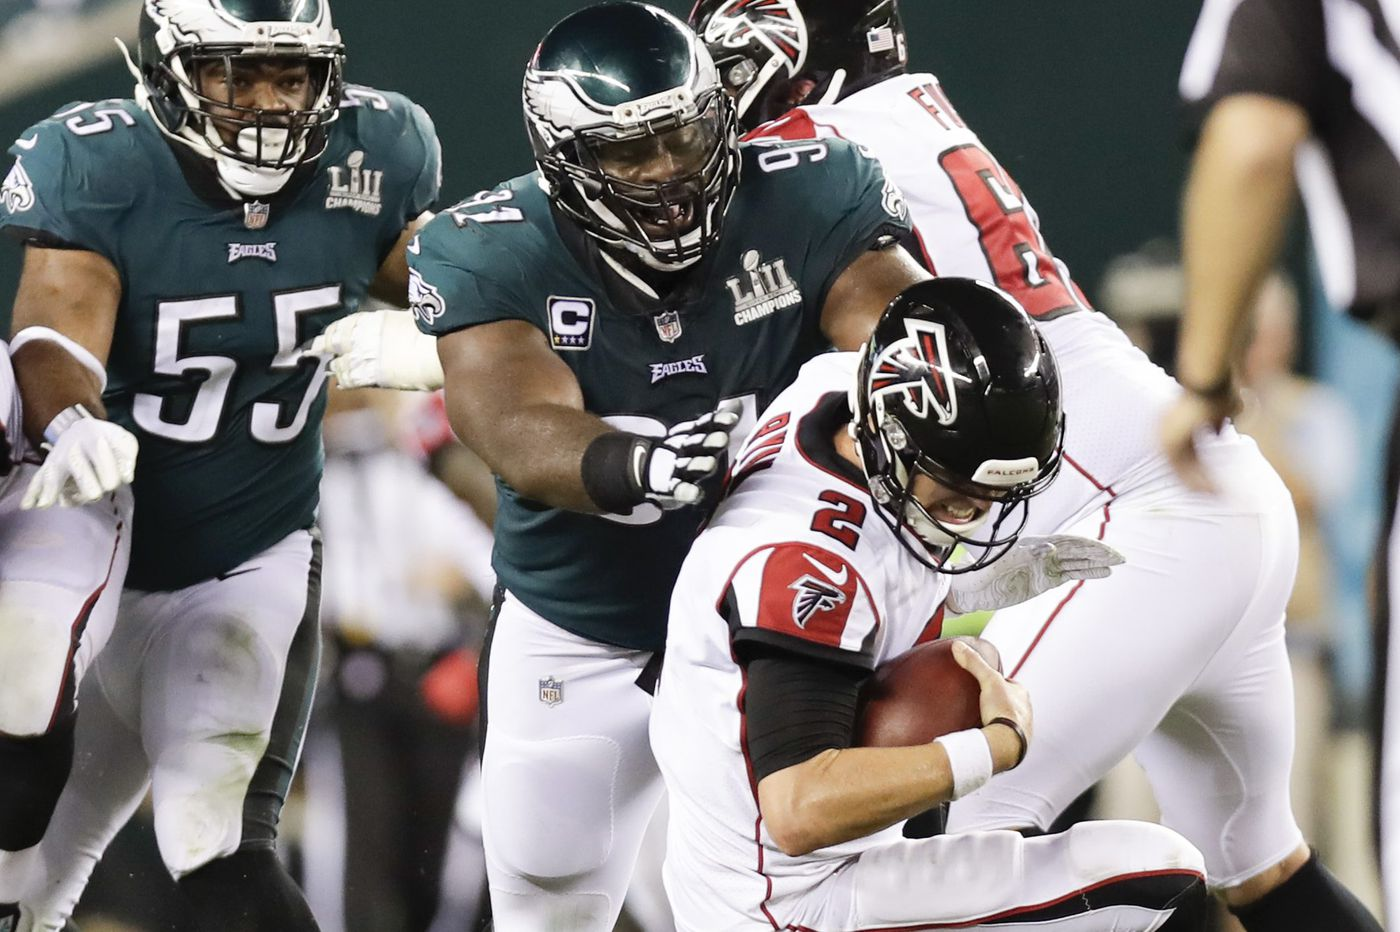 Flag day: Penalties were part of what made Eagles' opening win so ugly